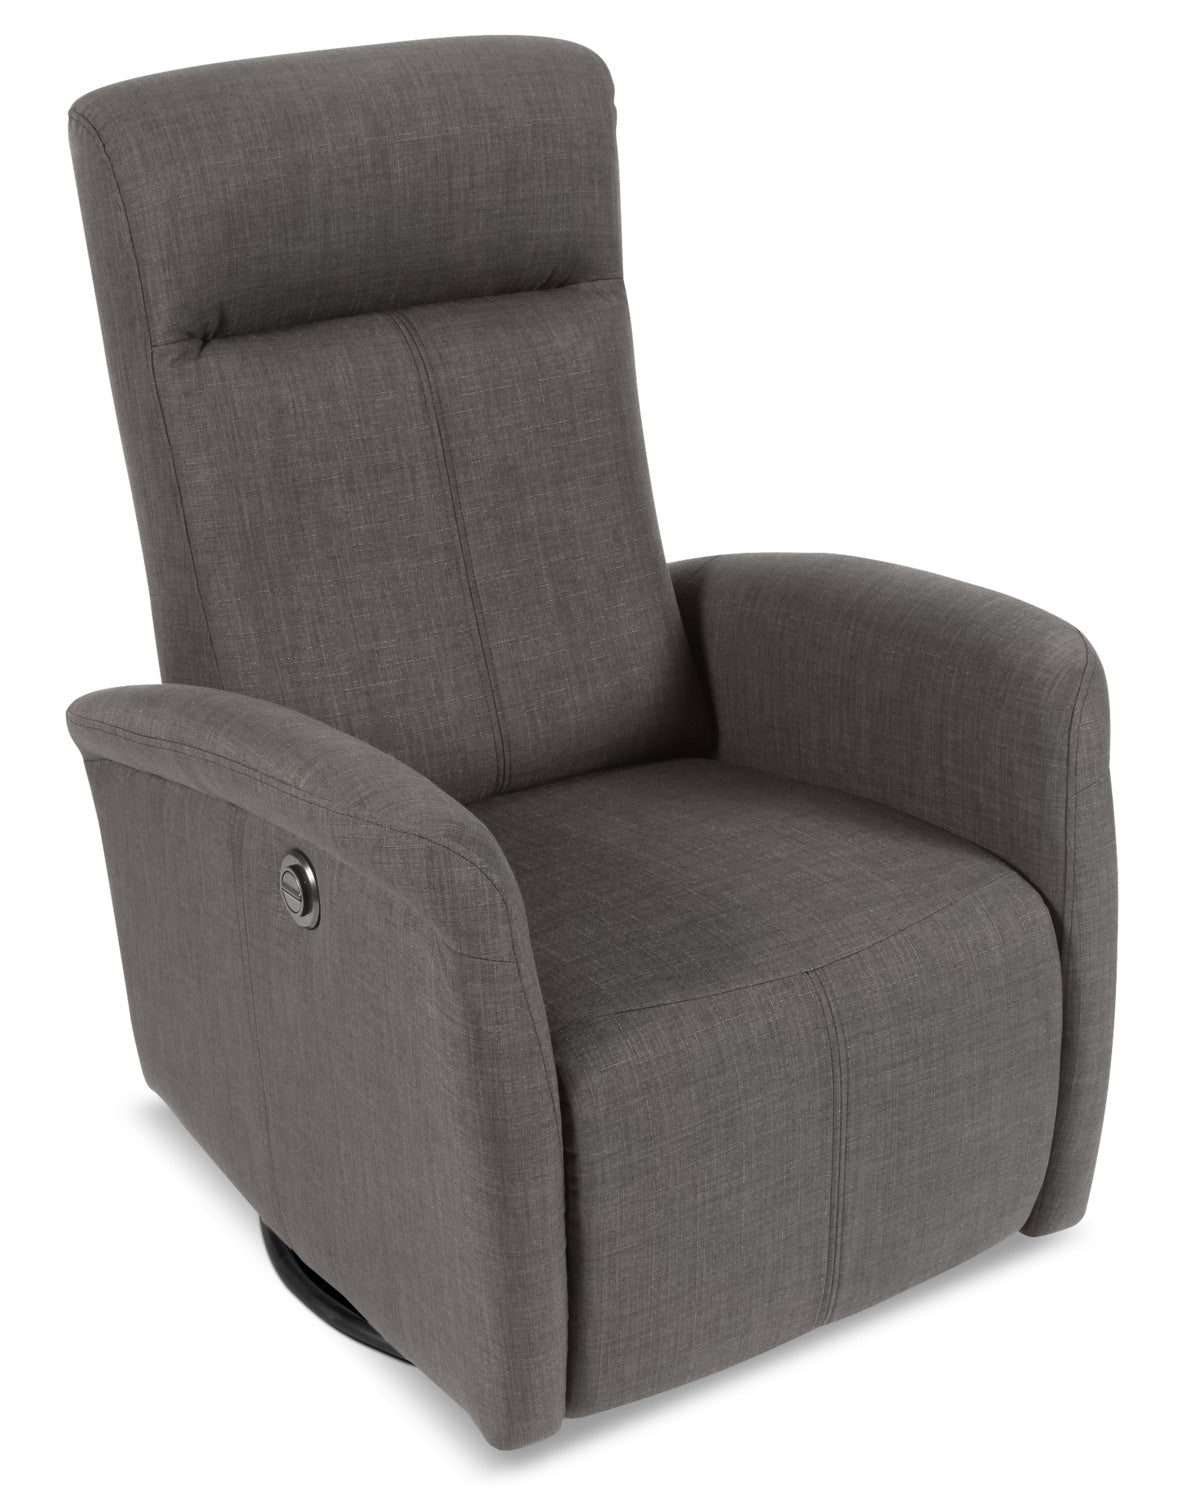 Swell Kelsey Swivel Power Glider Recliner Charcoal Alphanode Cool Chair Designs And Ideas Alphanodeonline